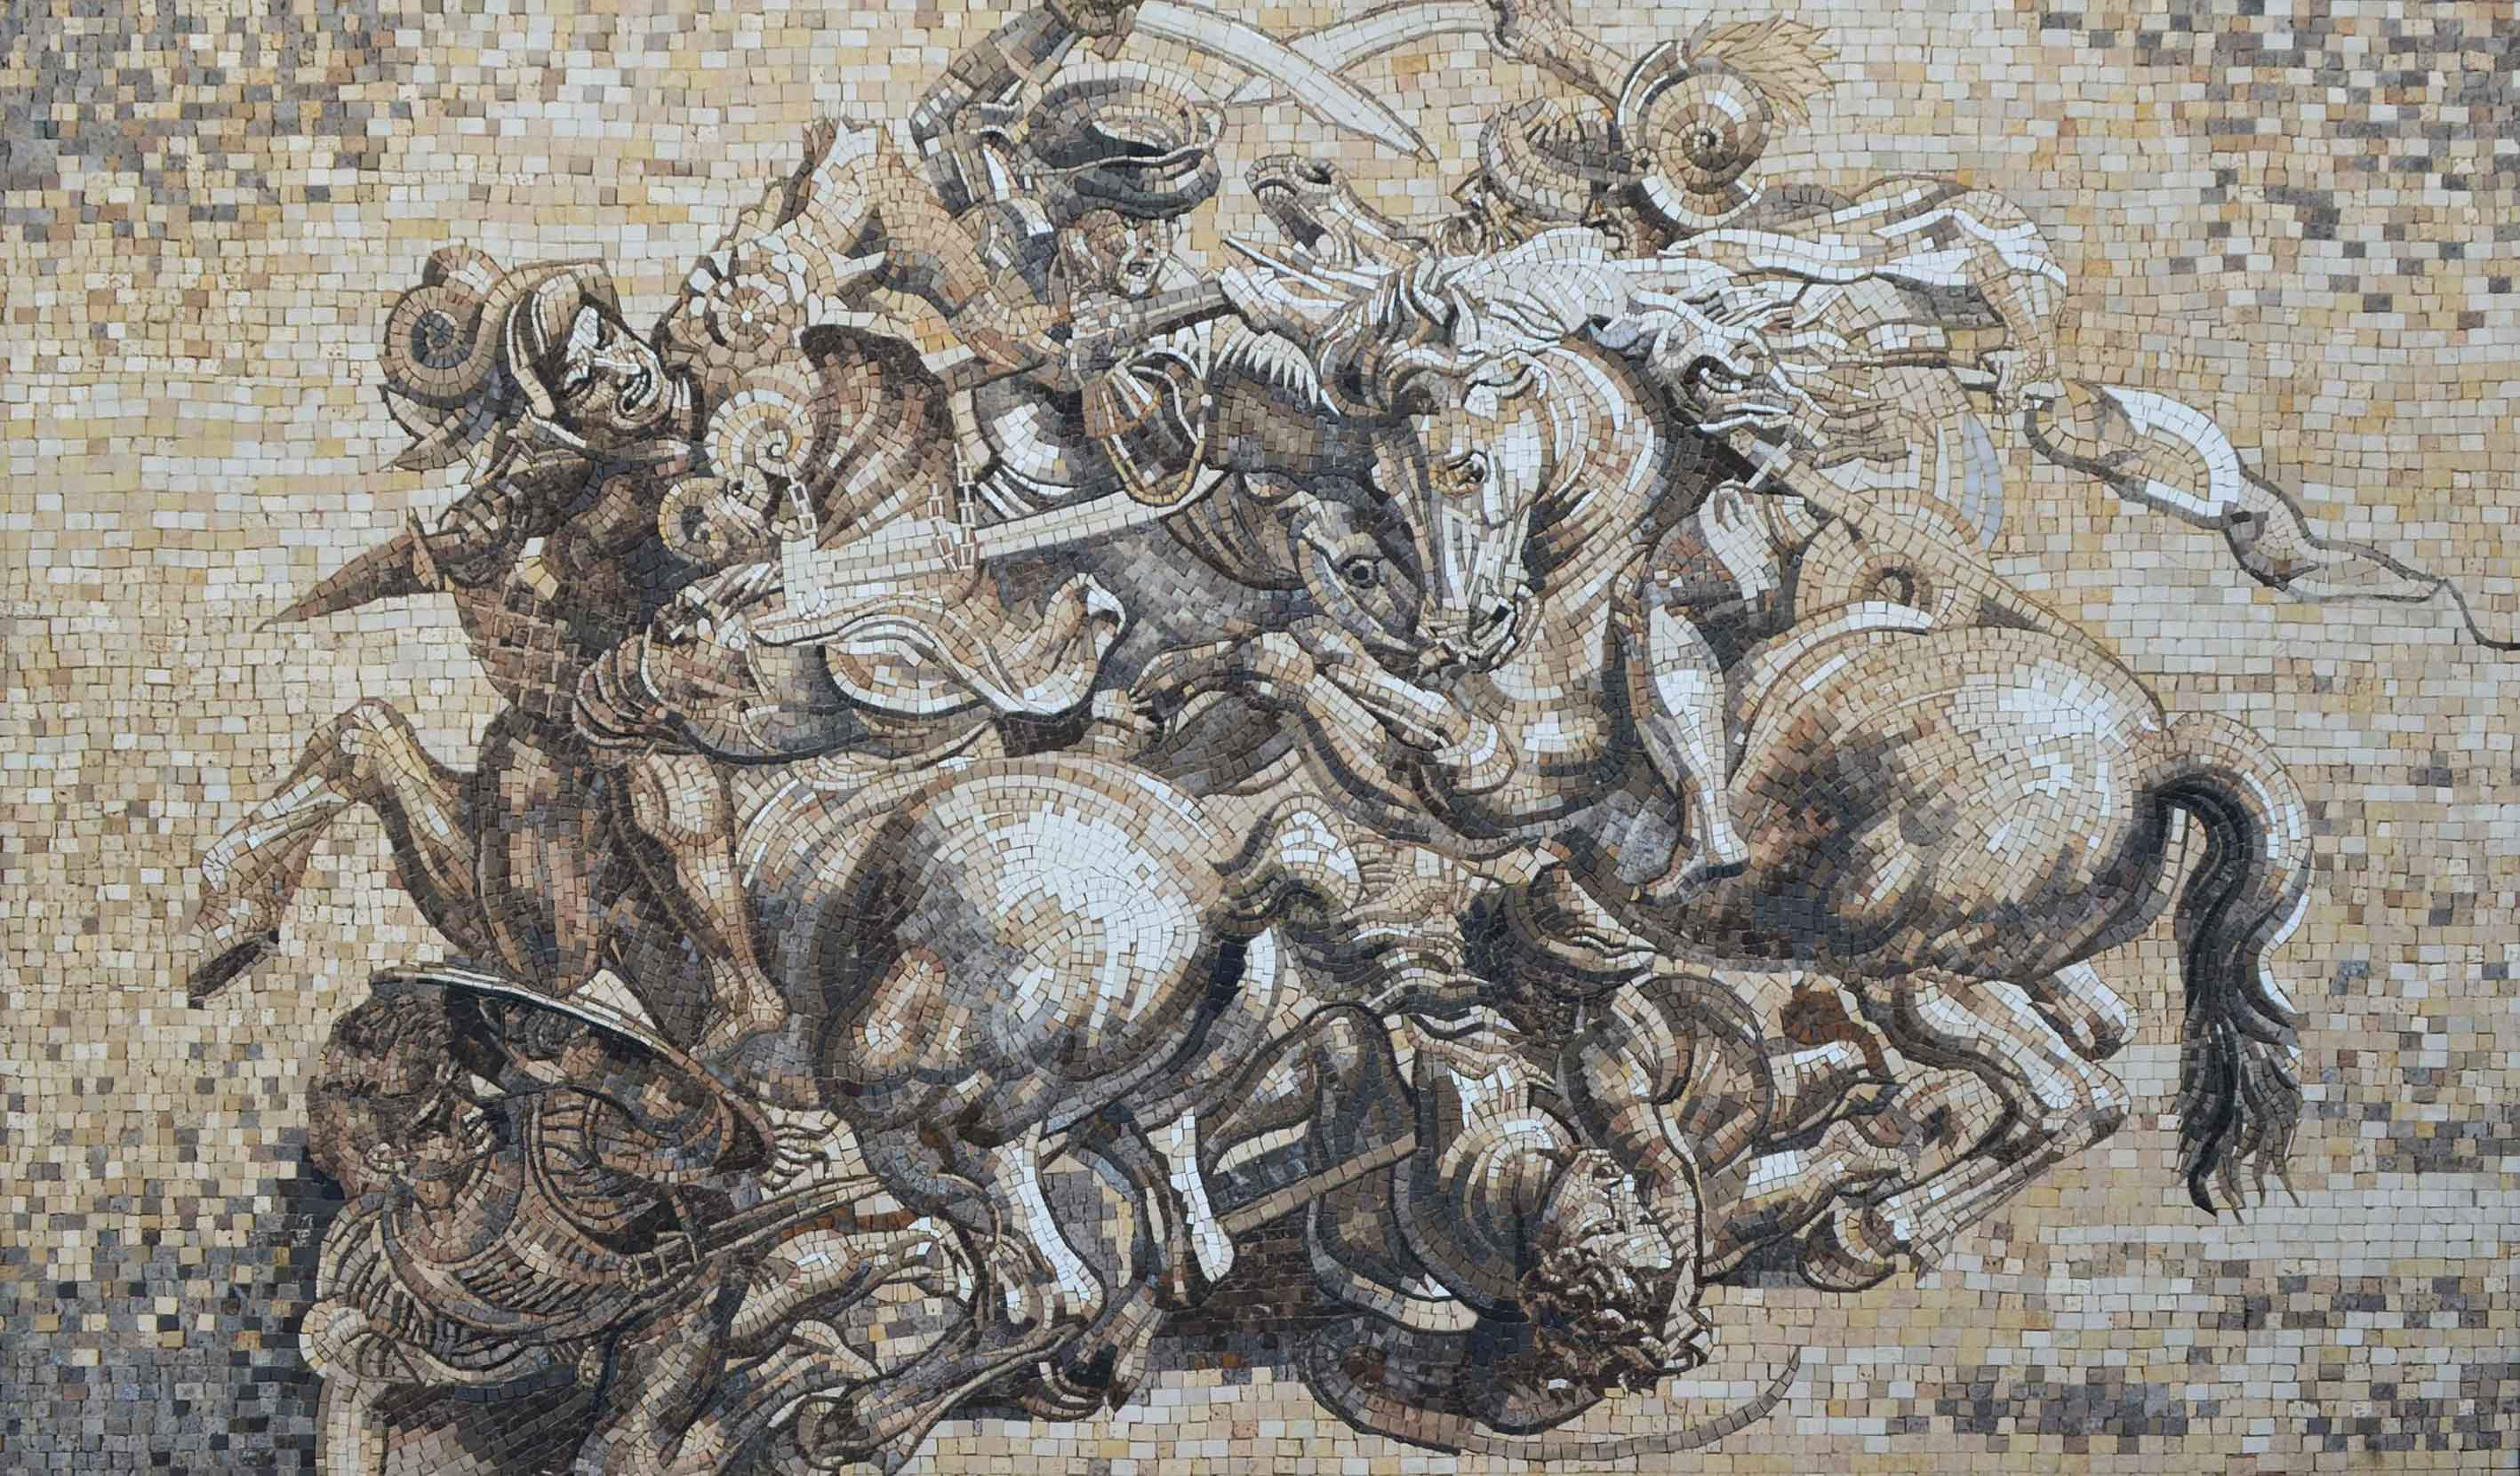 Mosaic Reproduction The Battle Of Anghiari Pic